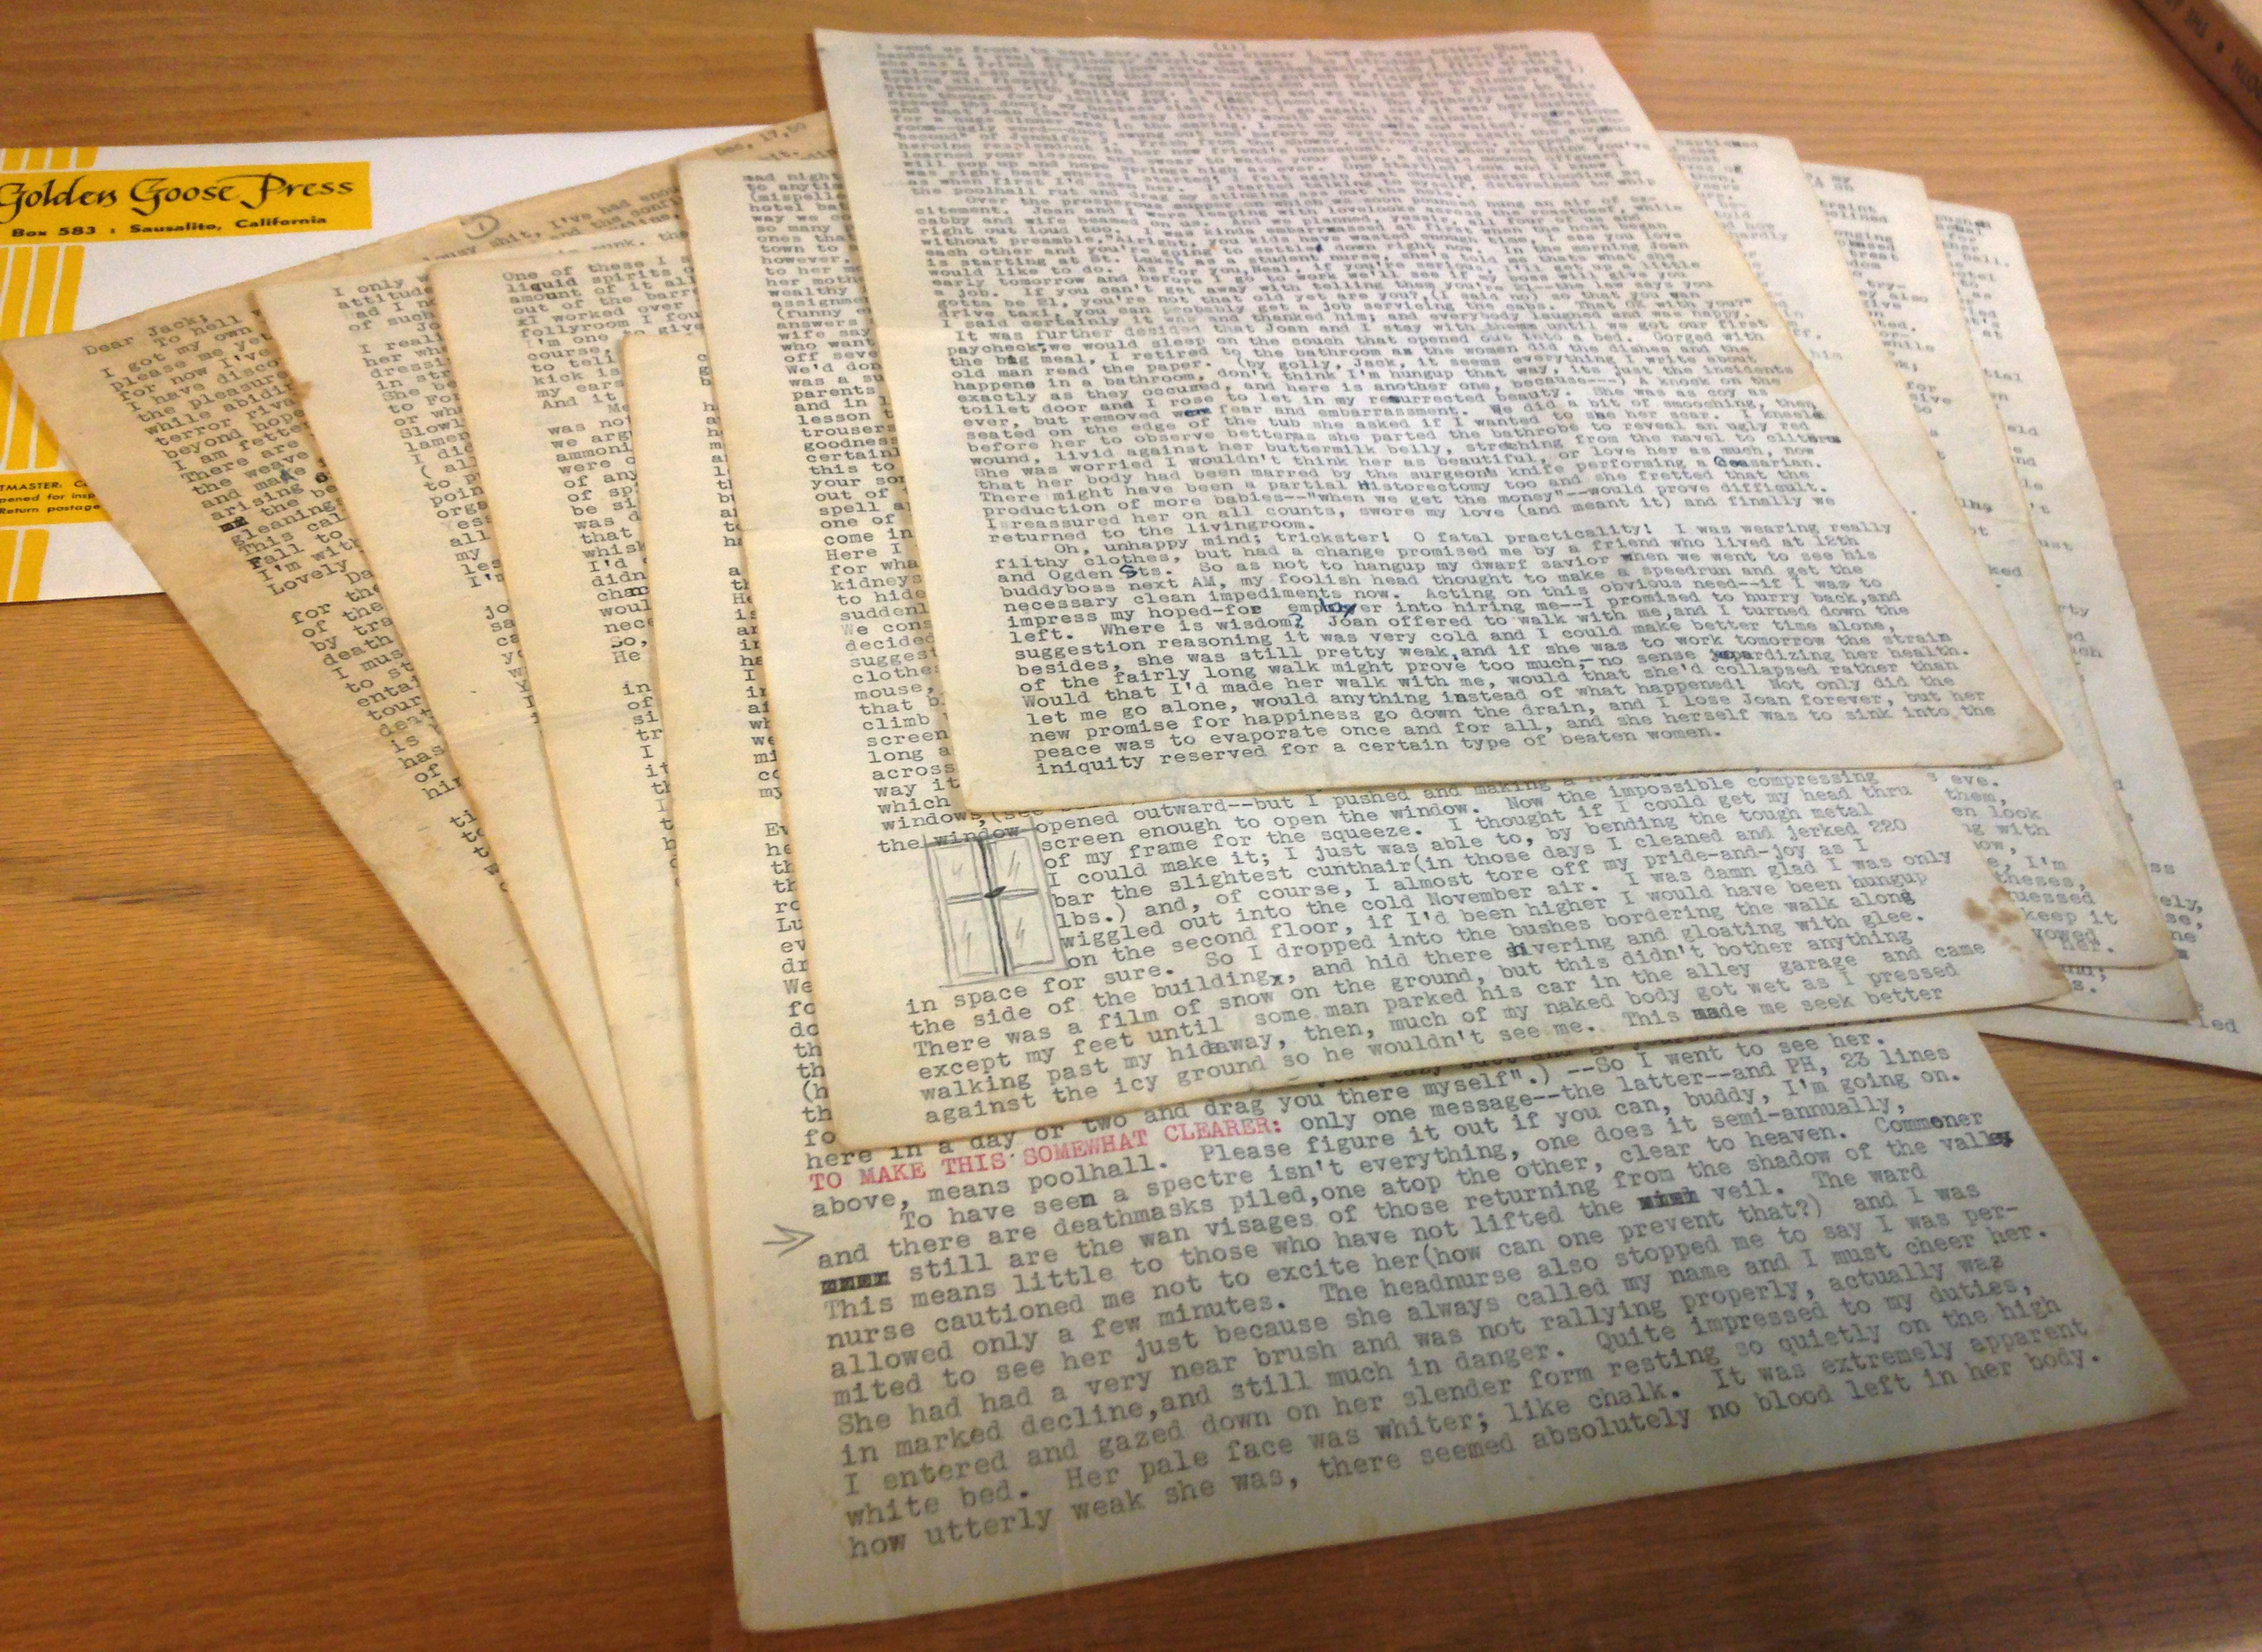 An 18-page letter written by Beat-era icon Neal Cassady, which transformed Jack Kerouac's writing style, is shown in San Francisco, California, Dec. 1, 2014